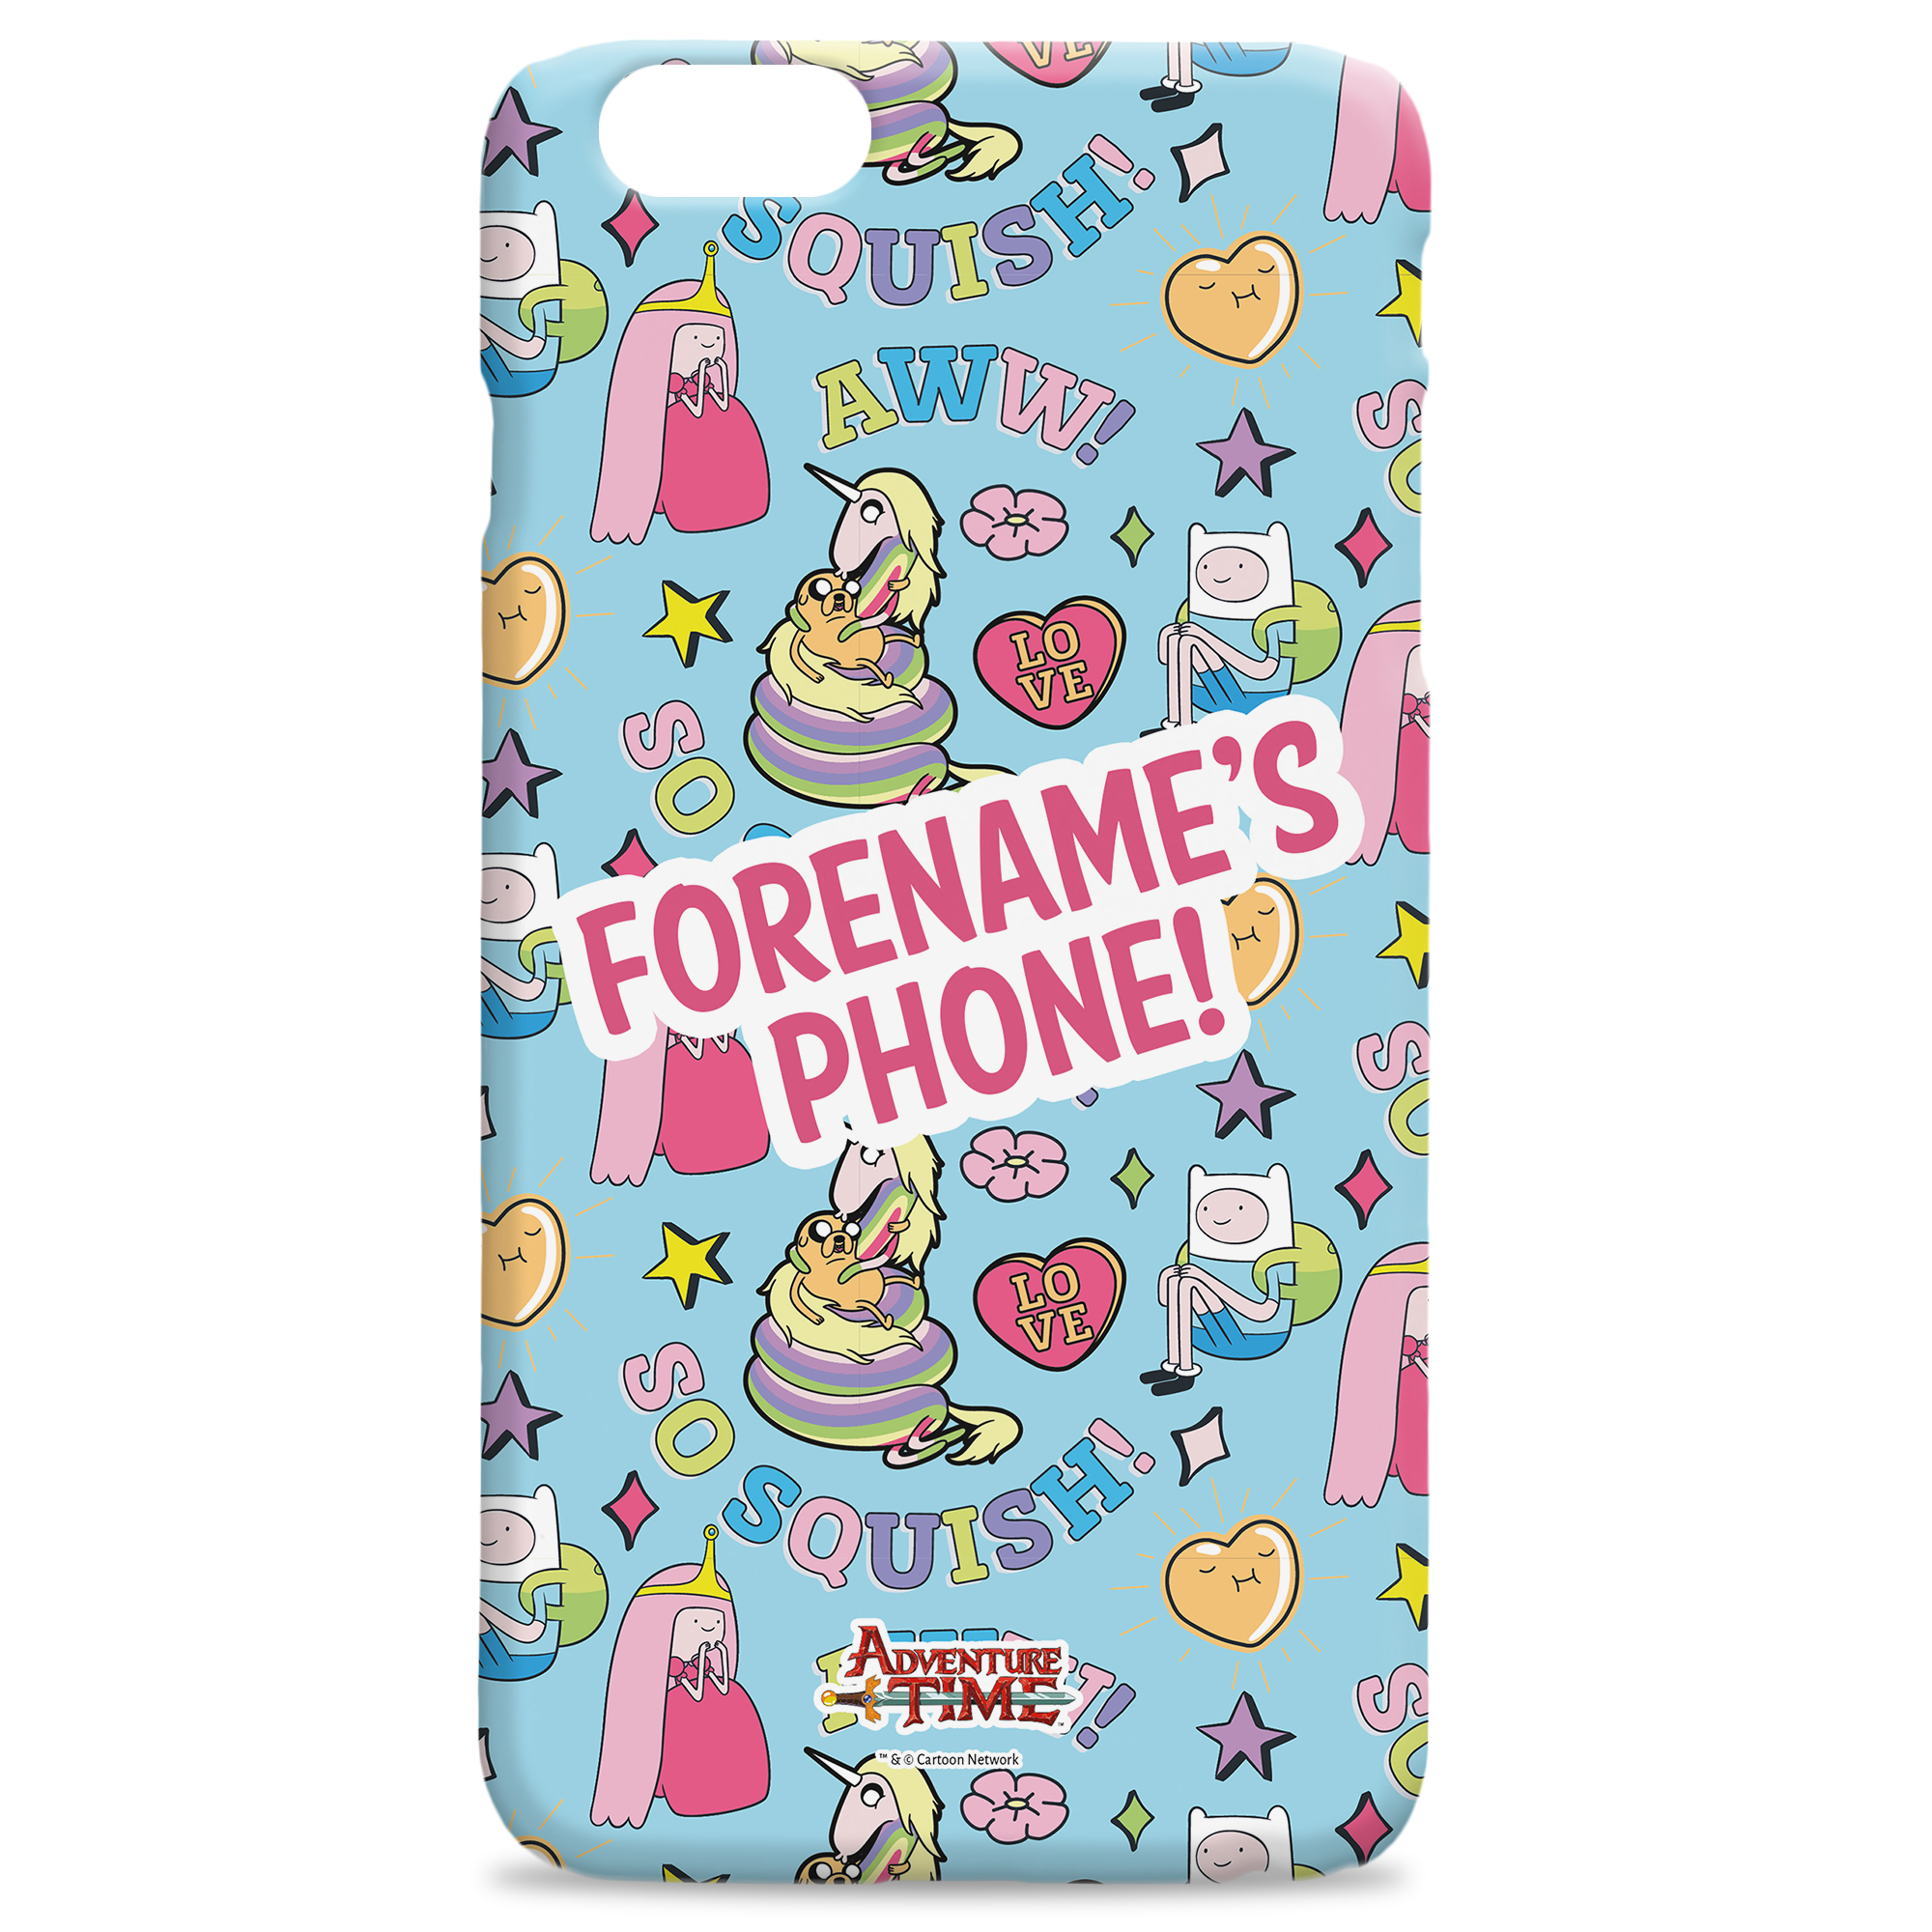 Adventure Time Squish iPhone Case